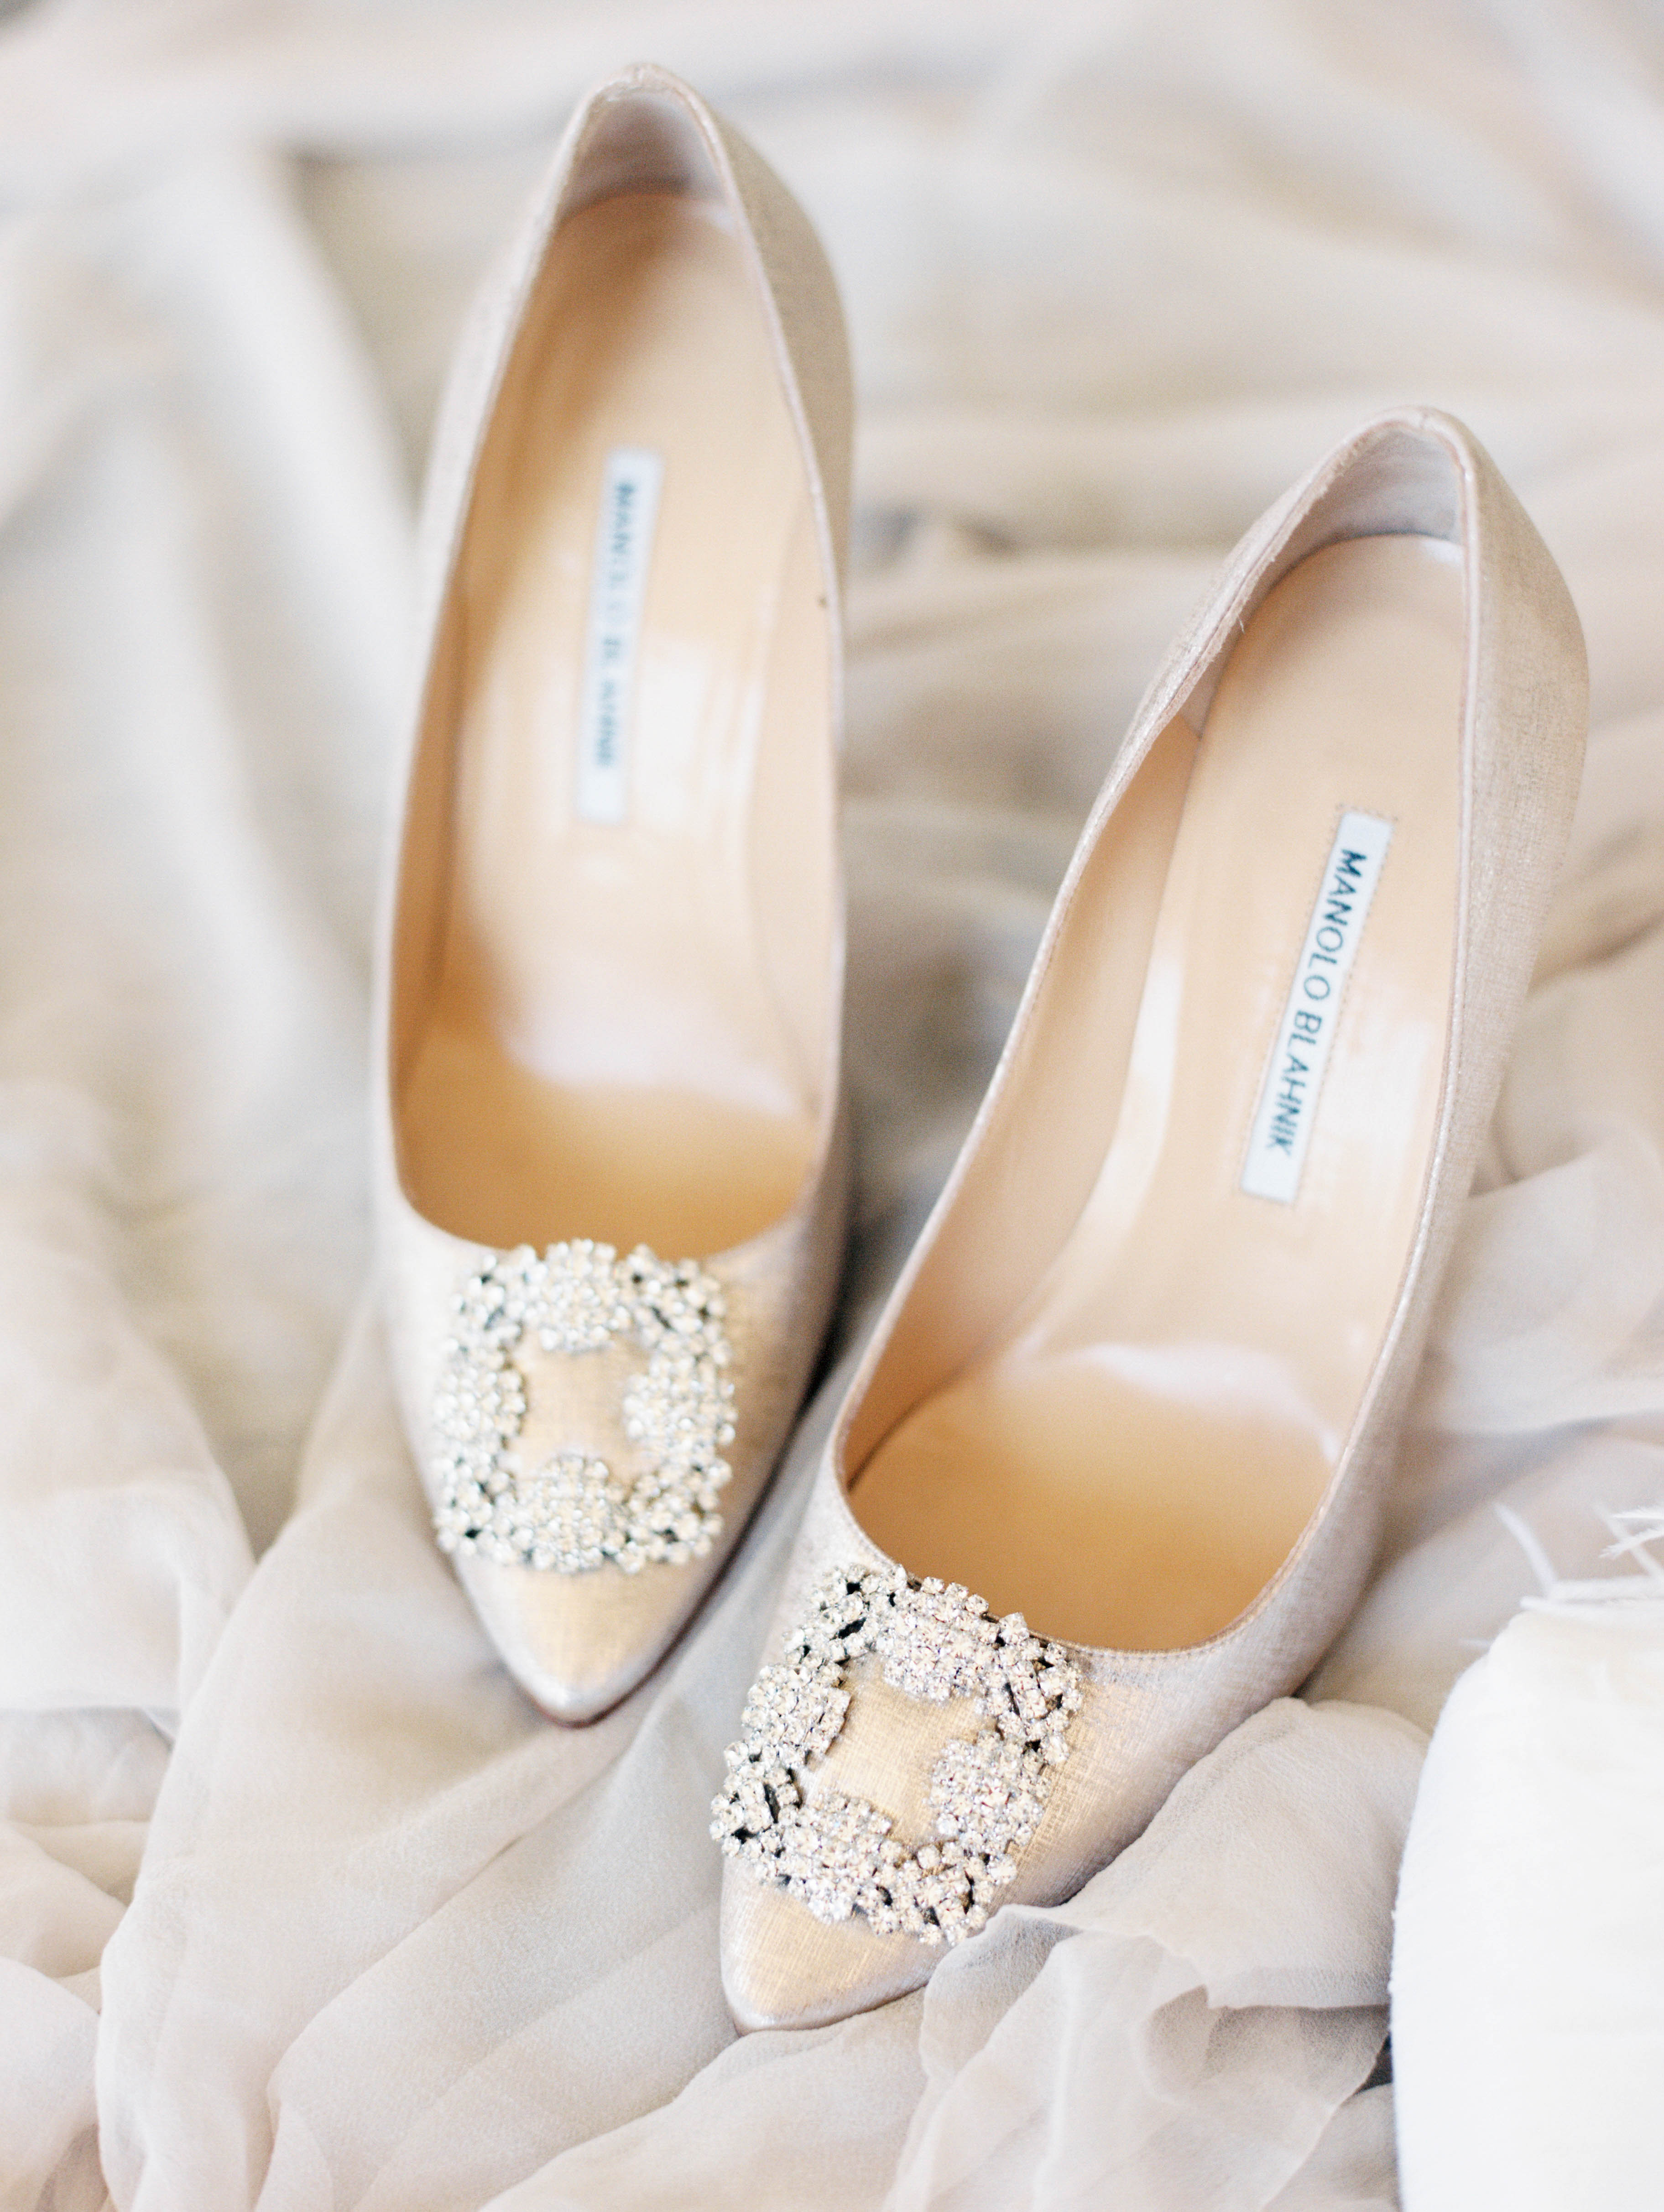 daniela emmanuel wedding maryland shoes